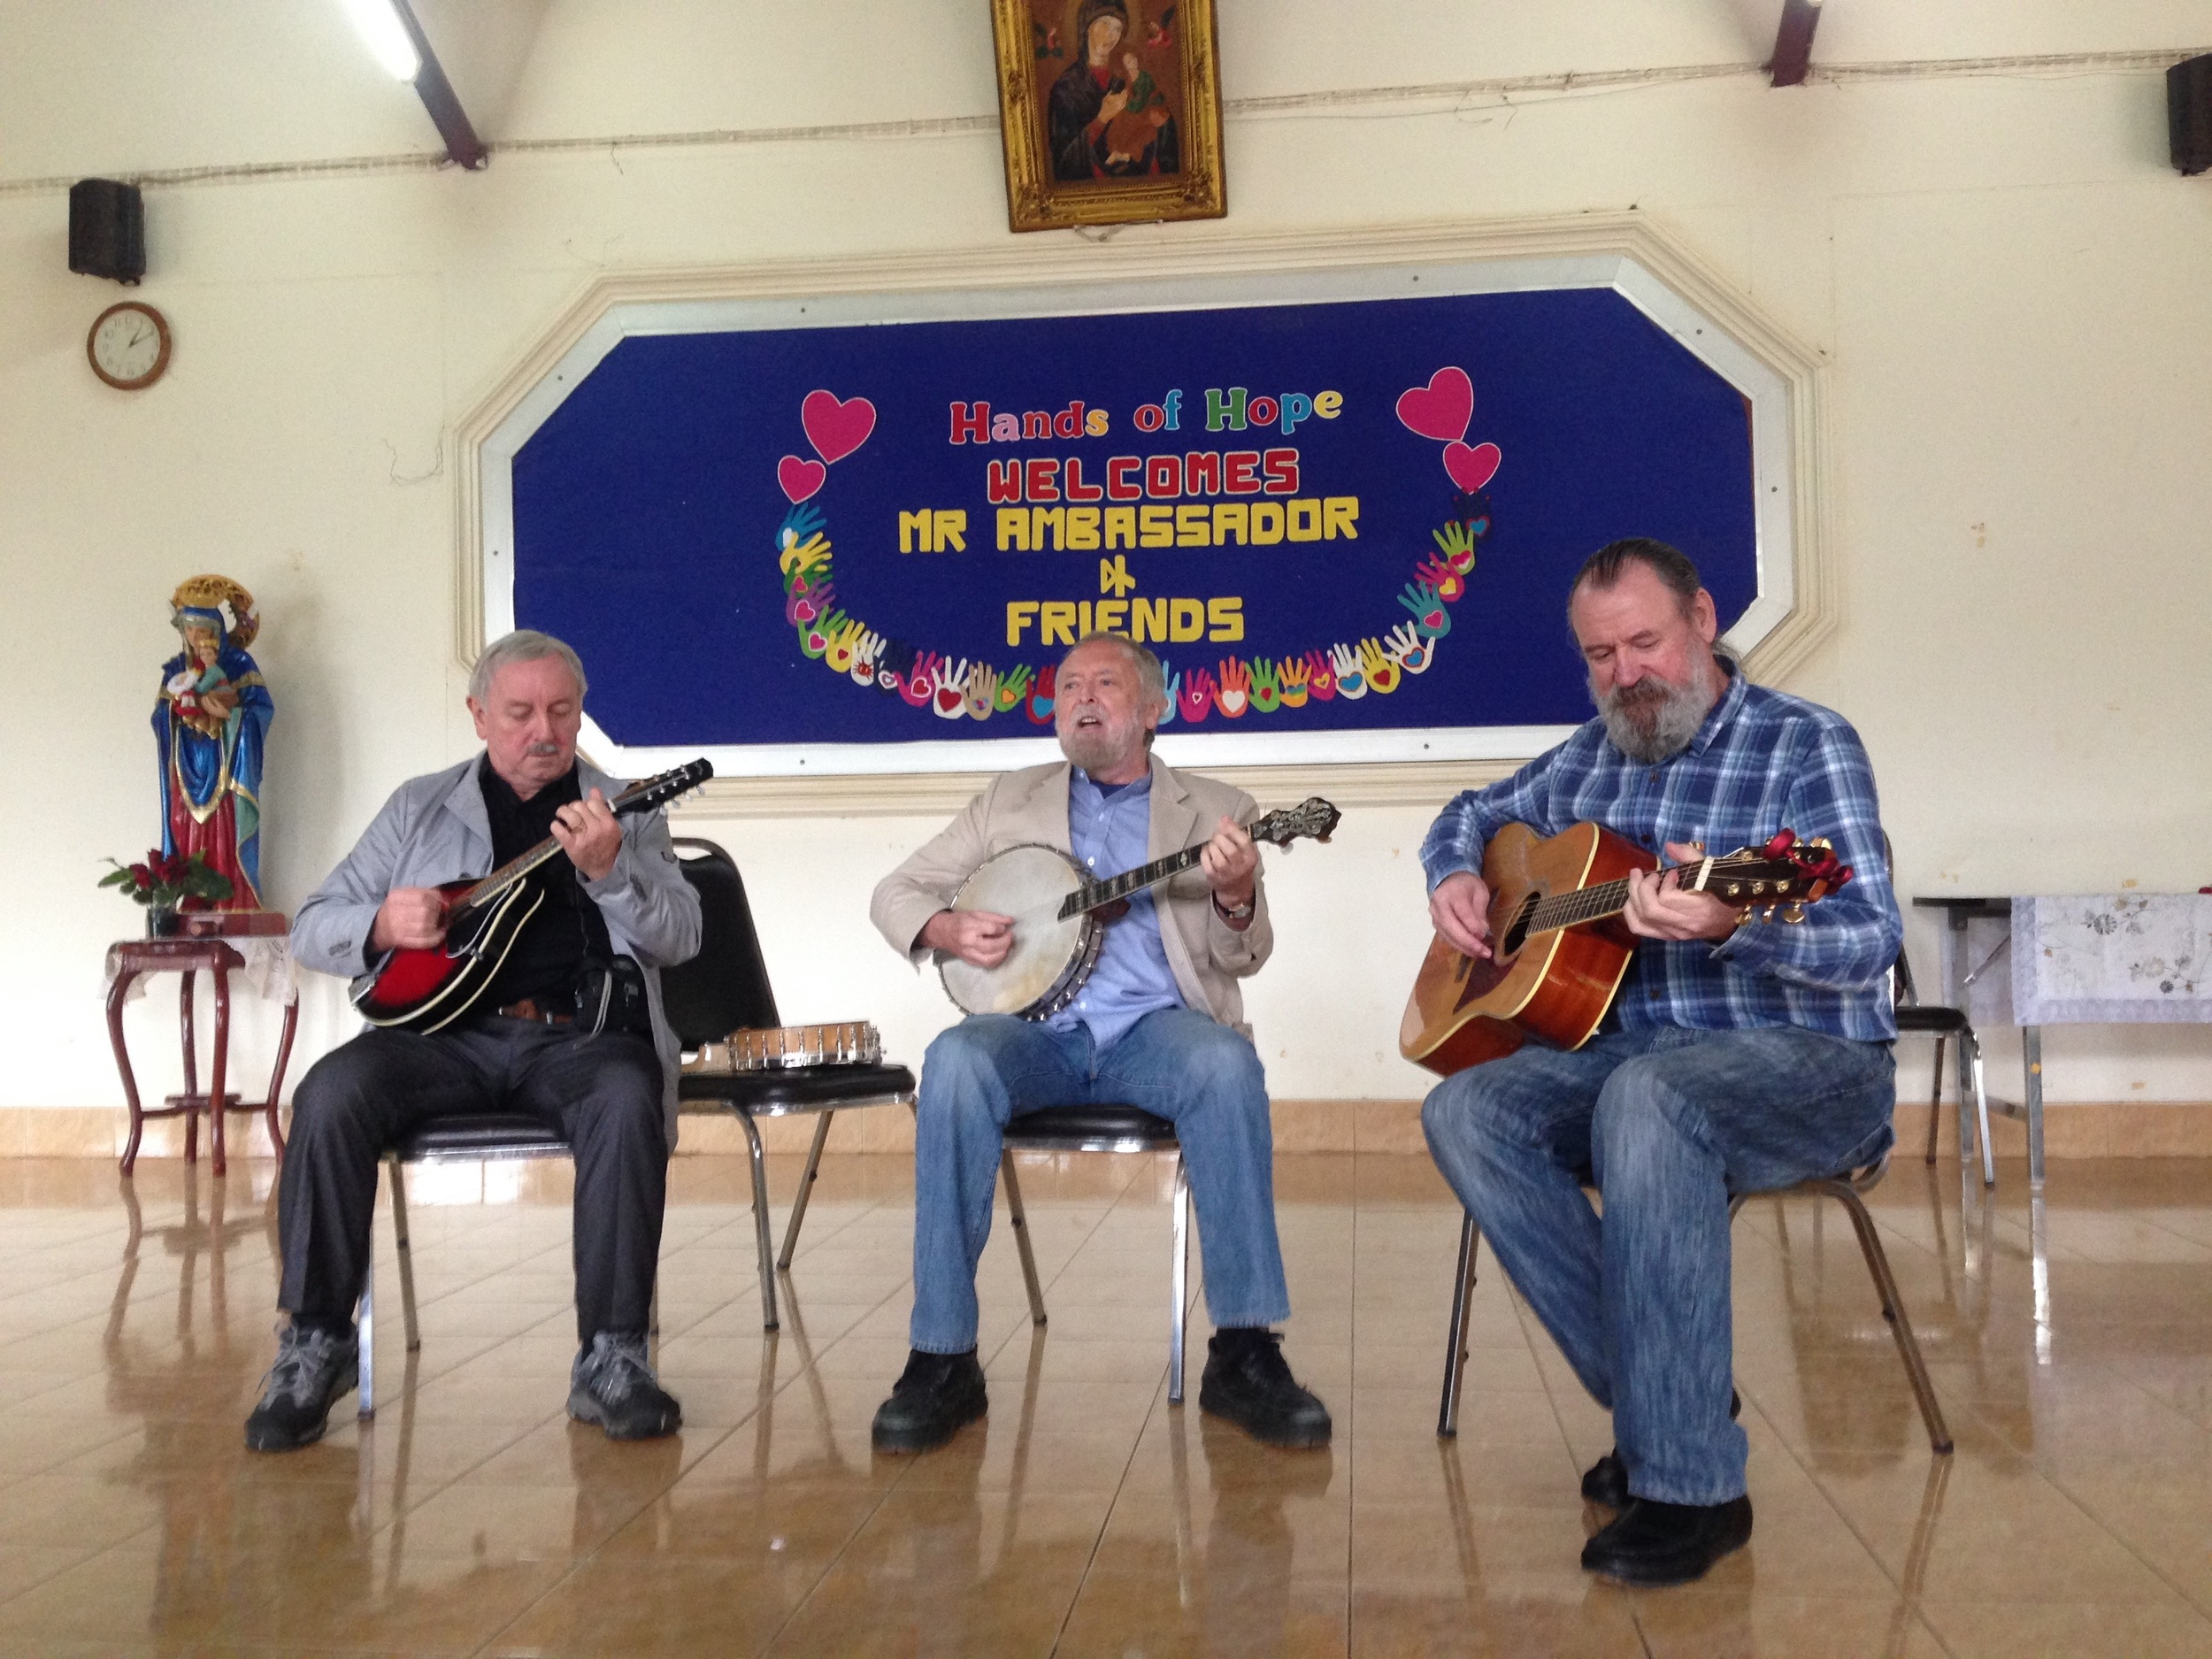 Irish musical visitors - what a treat to hear them play this week!